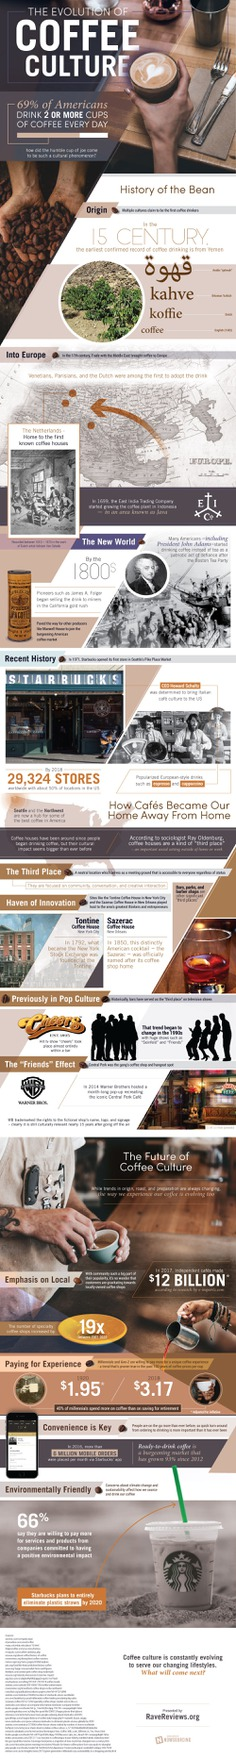 Coffee Culture - the evolution of coffee culture